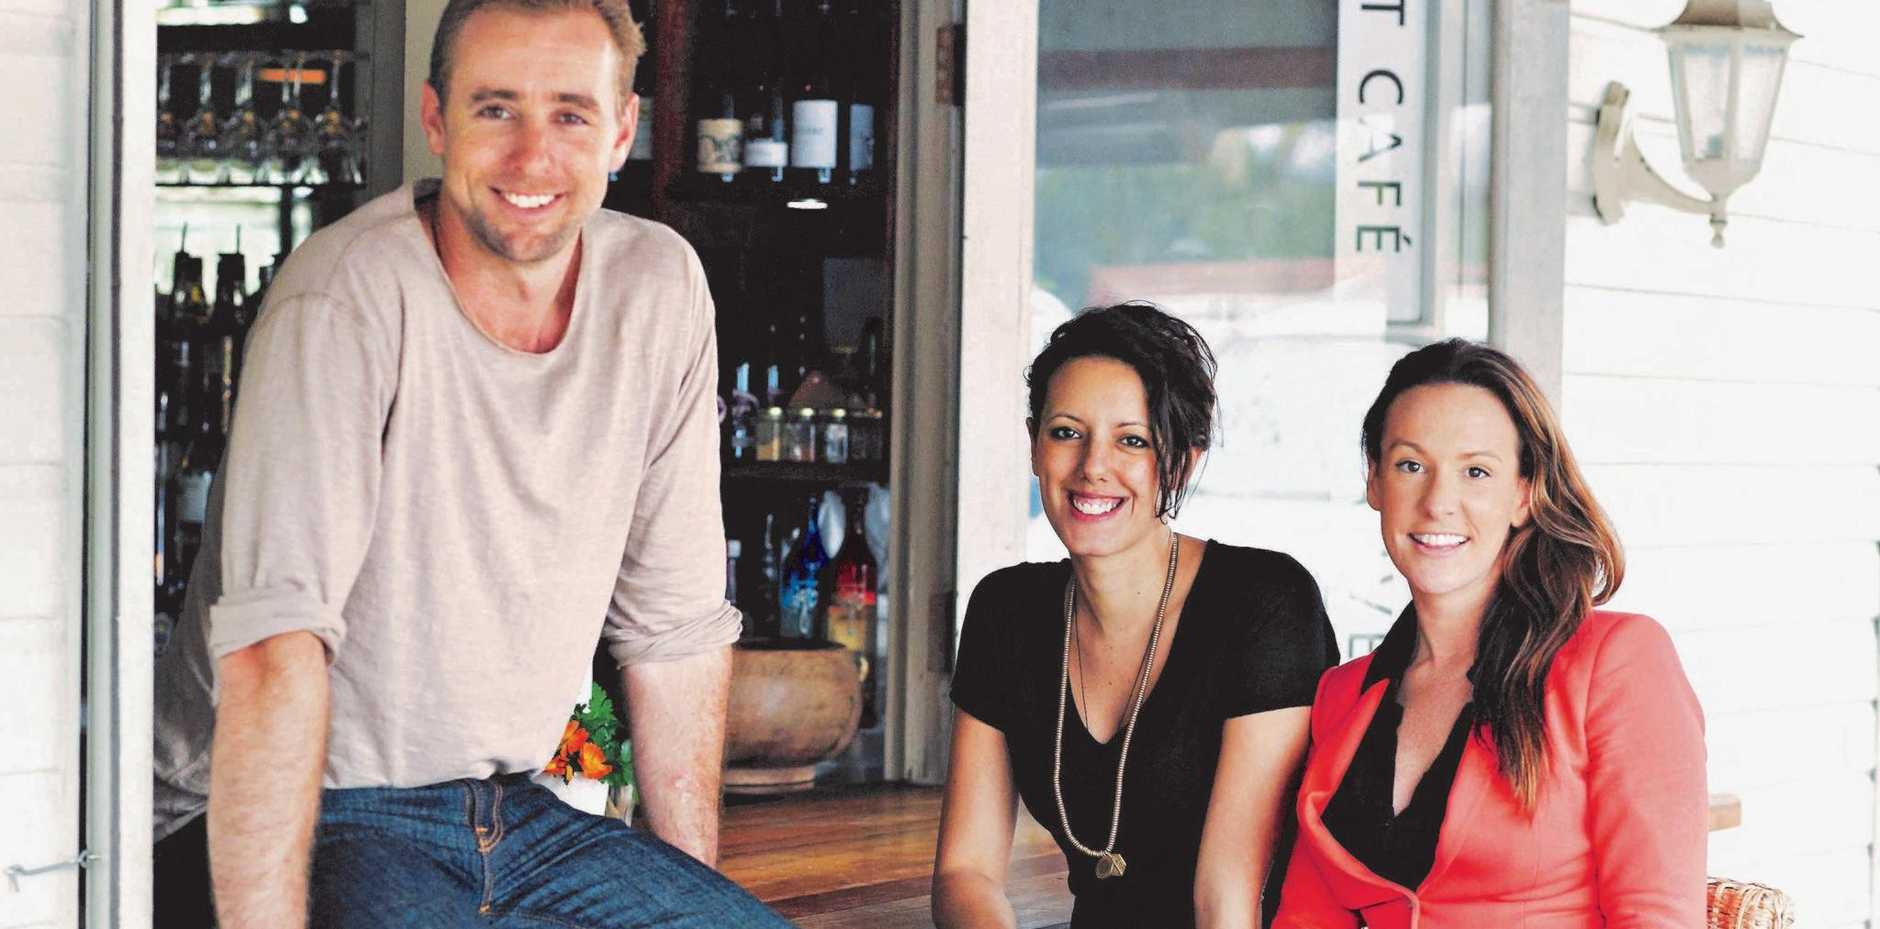 ABOVE: Harvest co-owners Tristan Grier, Cassia Grier and Brooke Hudson, are celebrating a decade since starting their business venture.